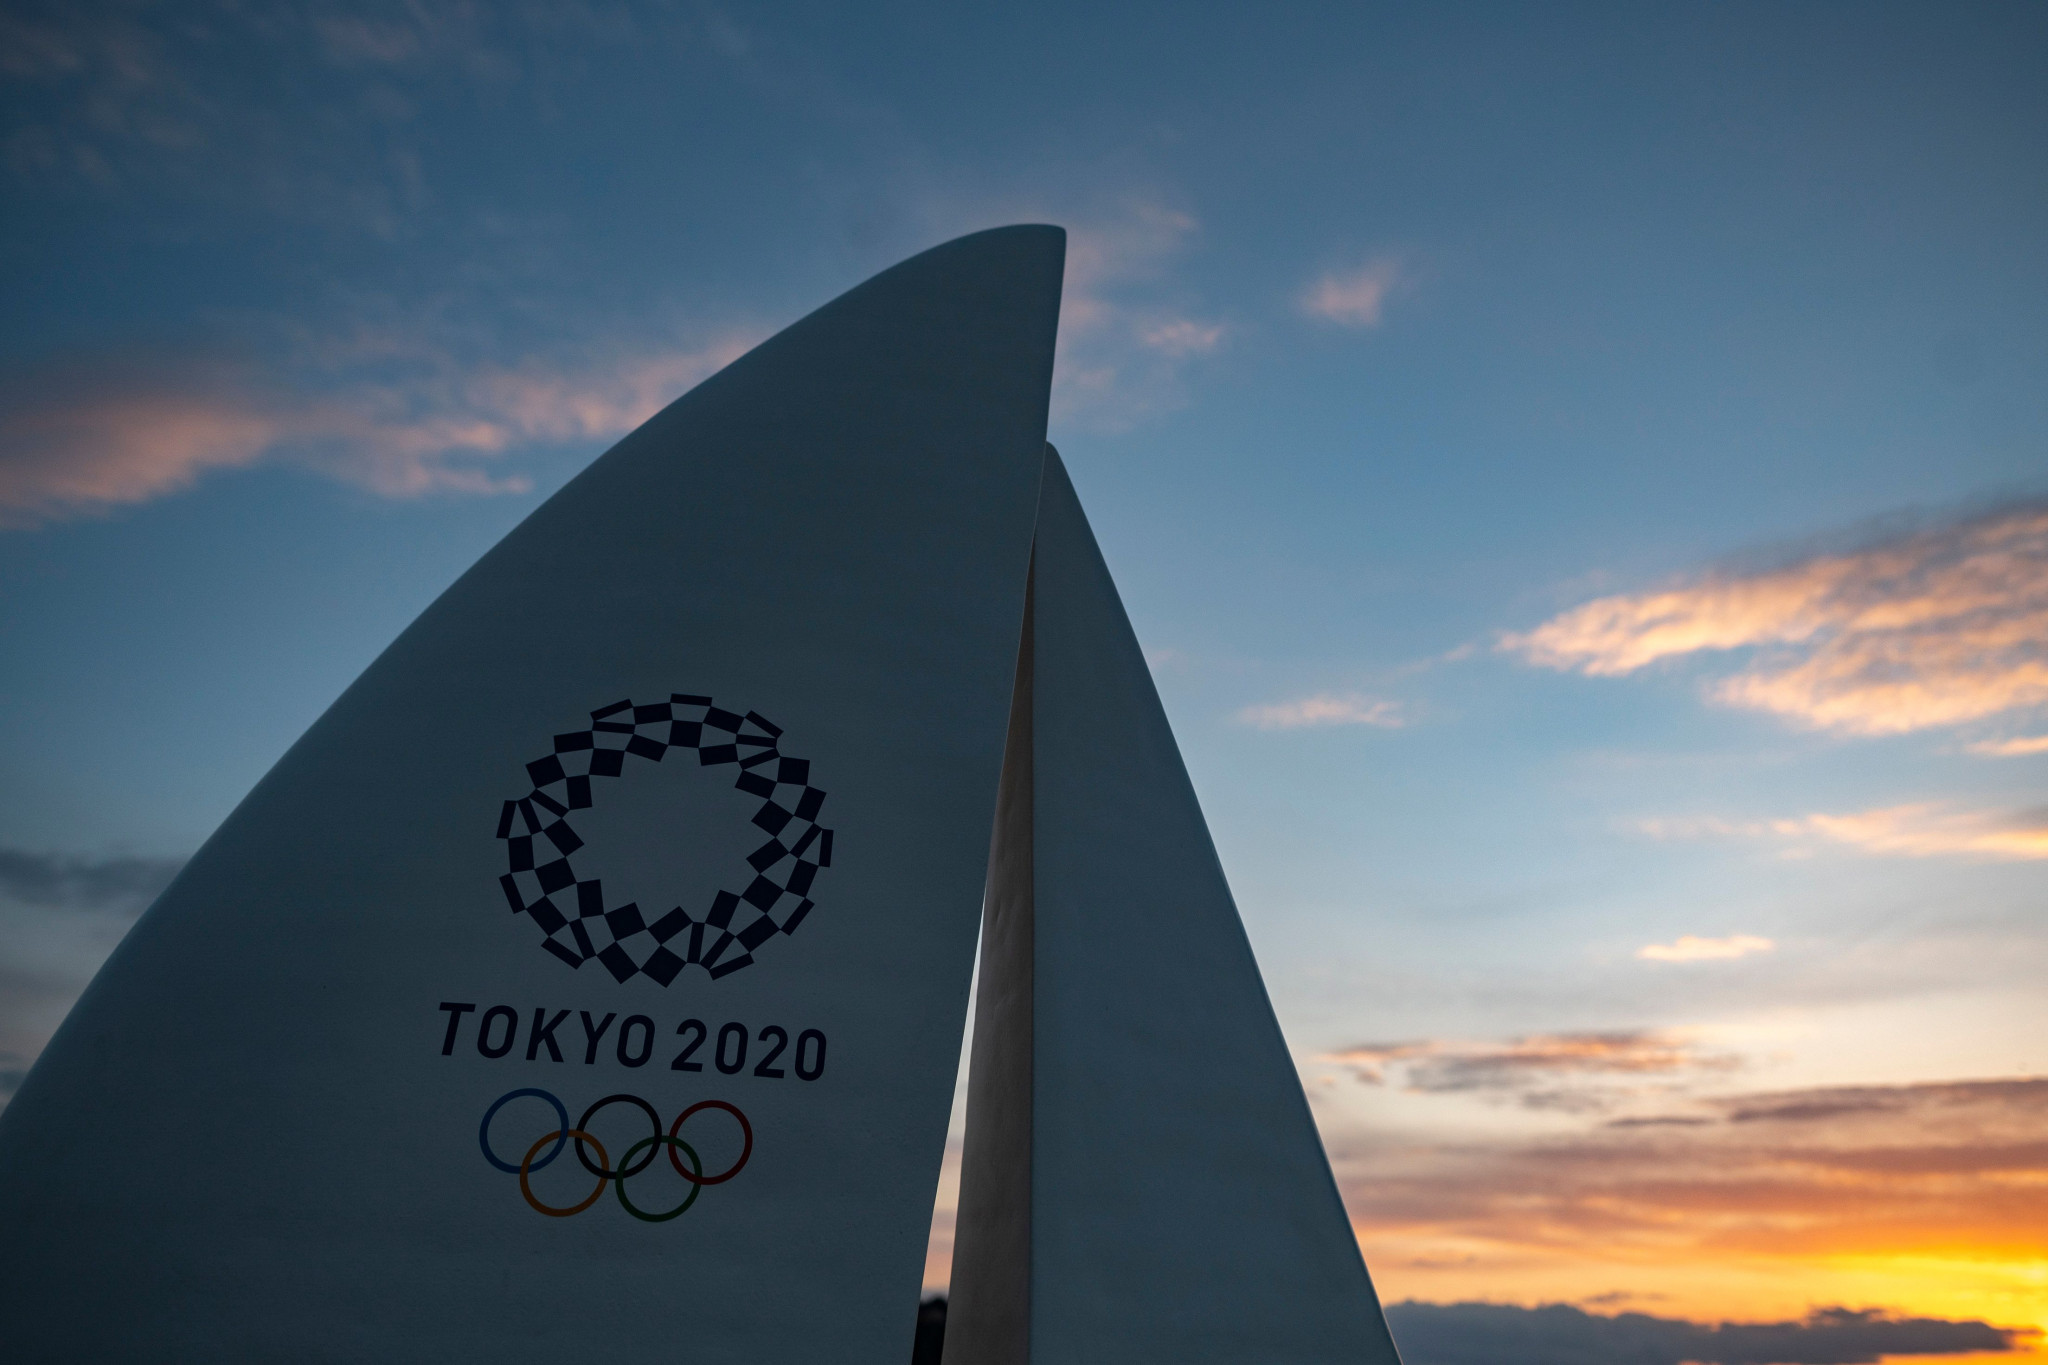 IOC urged to provide clear refund policy if overseas fans unable to attend Tokyo 2020